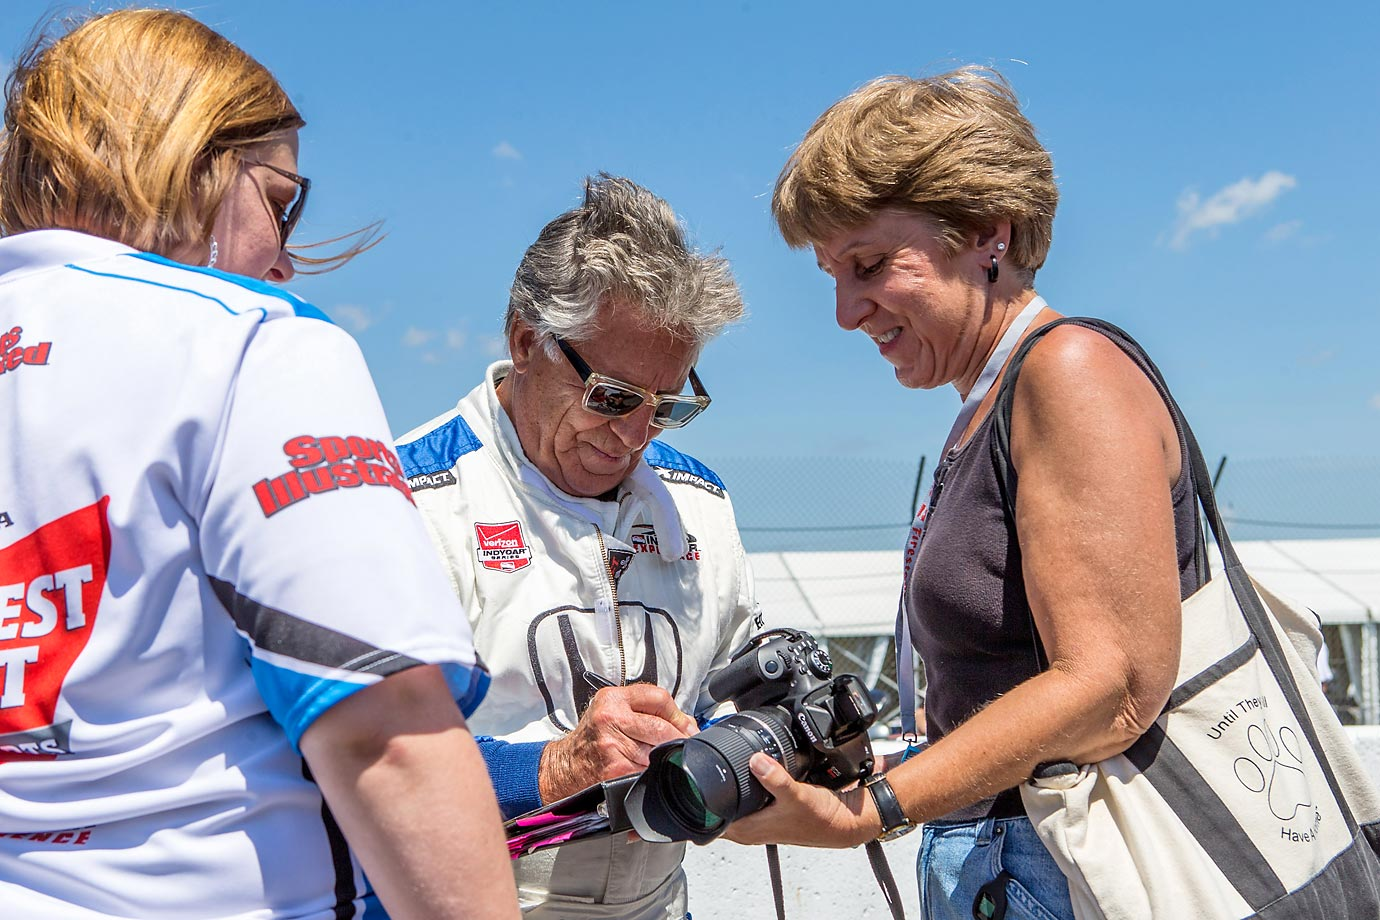 Mario Andretti signs an autograph for a fan before the Honda Indy 200 in Lexington, Ohio.